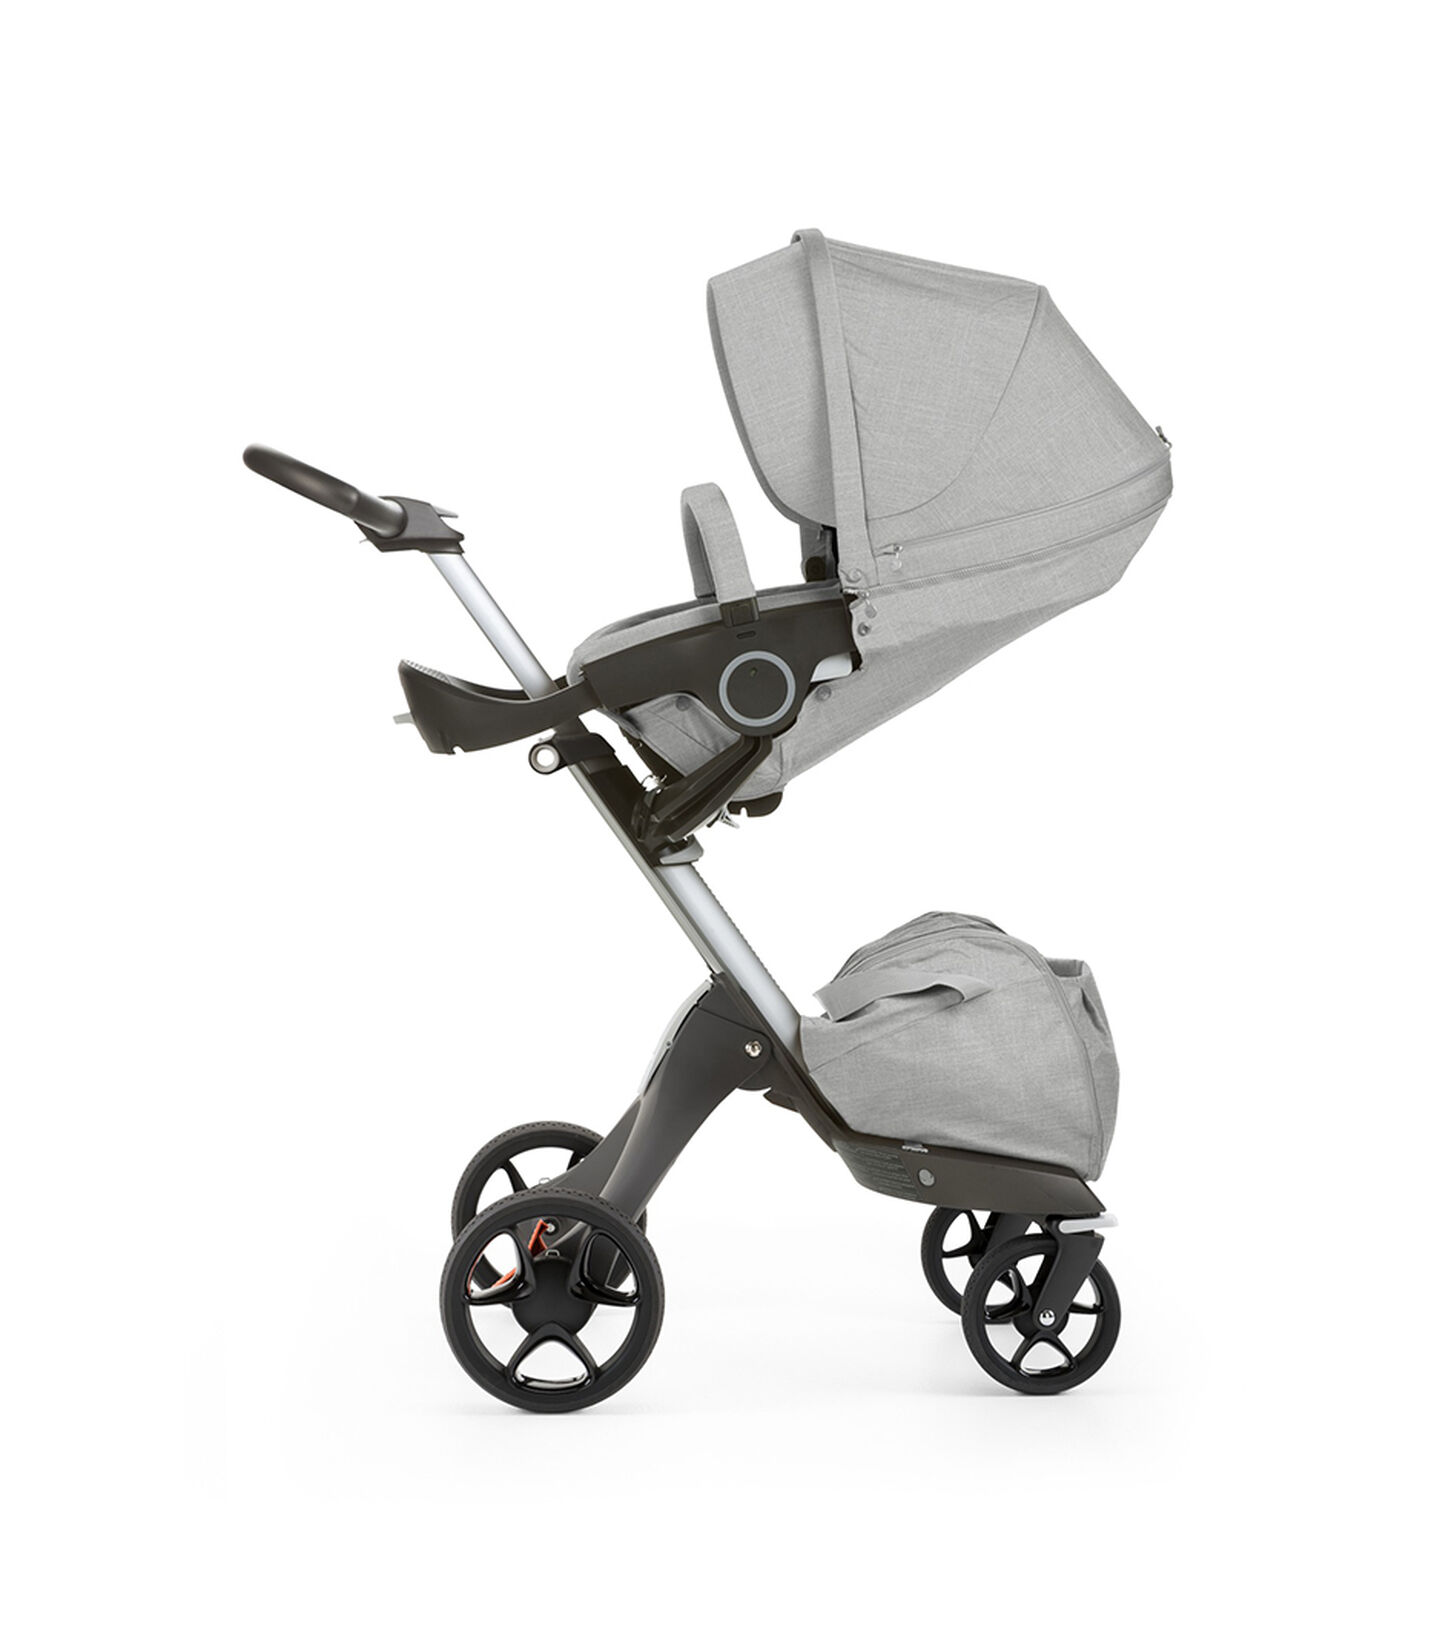 Stokke® Xplory® with Stokke® Stroller Seat, parent facing, sleep position. Grey Melange. New wheels 2016. view 2